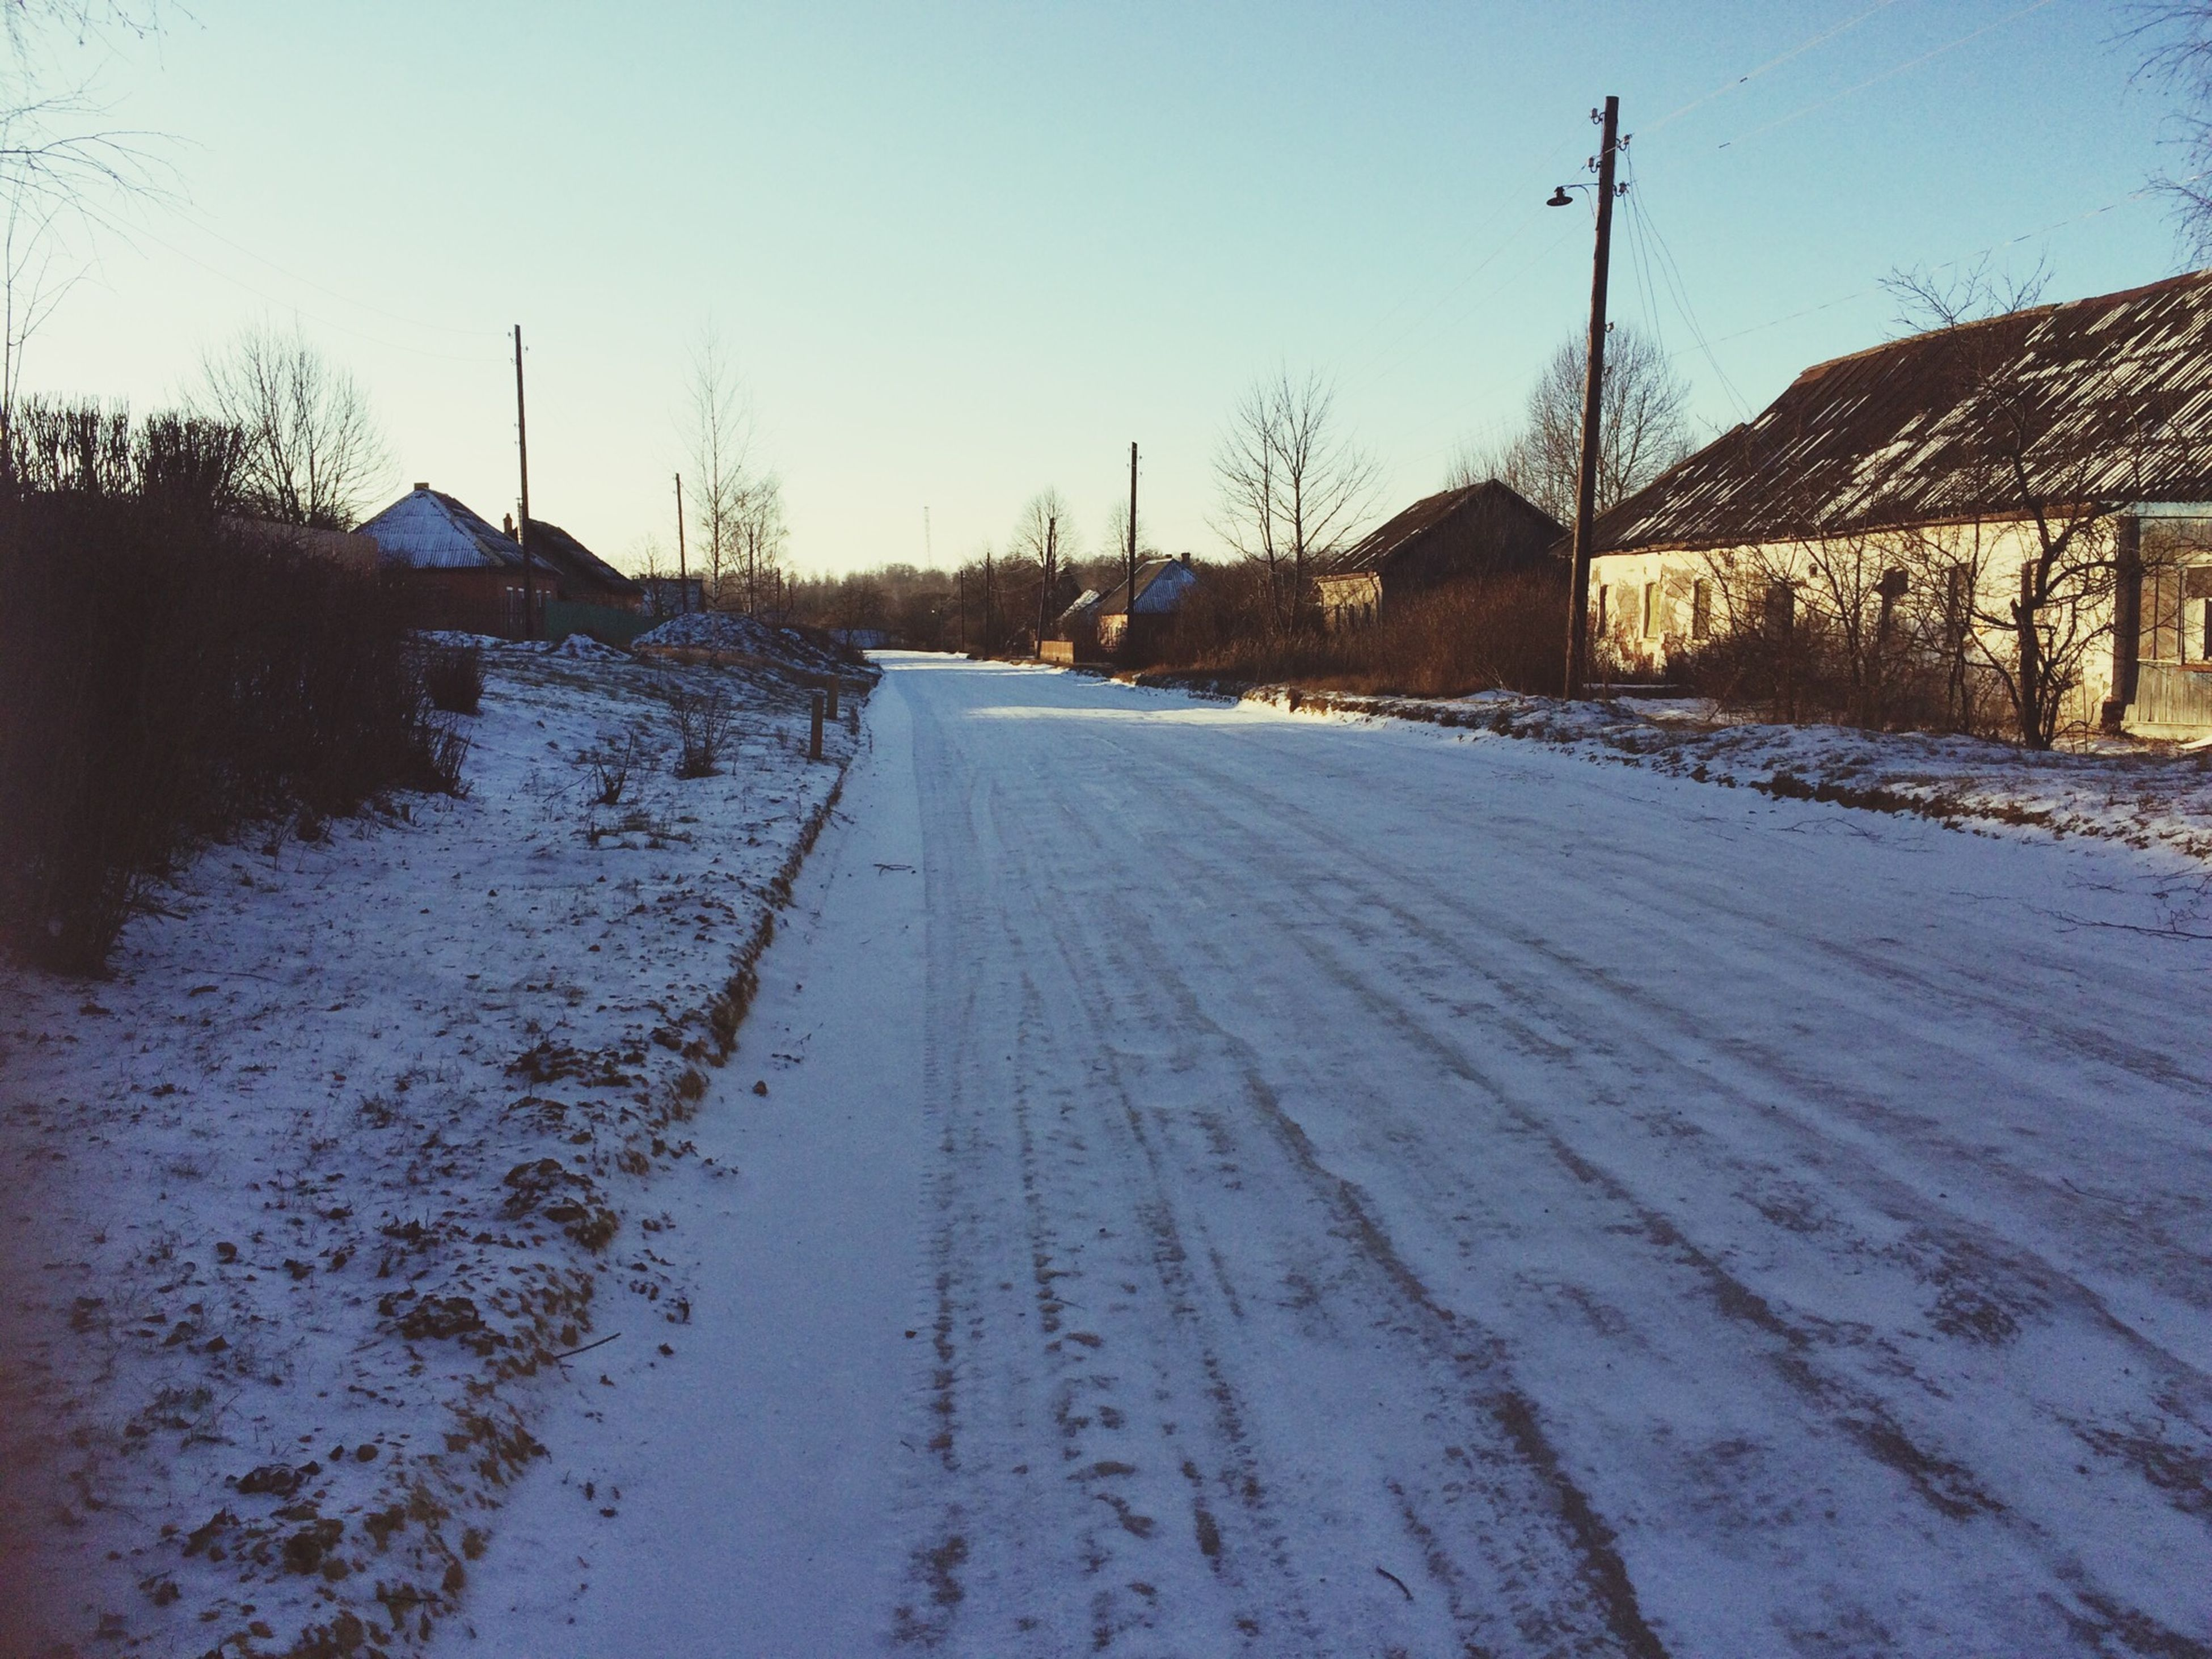 snow, winter, cold temperature, the way forward, season, building exterior, clear sky, built structure, architecture, electricity pylon, transportation, power line, diminishing perspective, house, street, sky, road, weather, vanishing point, frozen